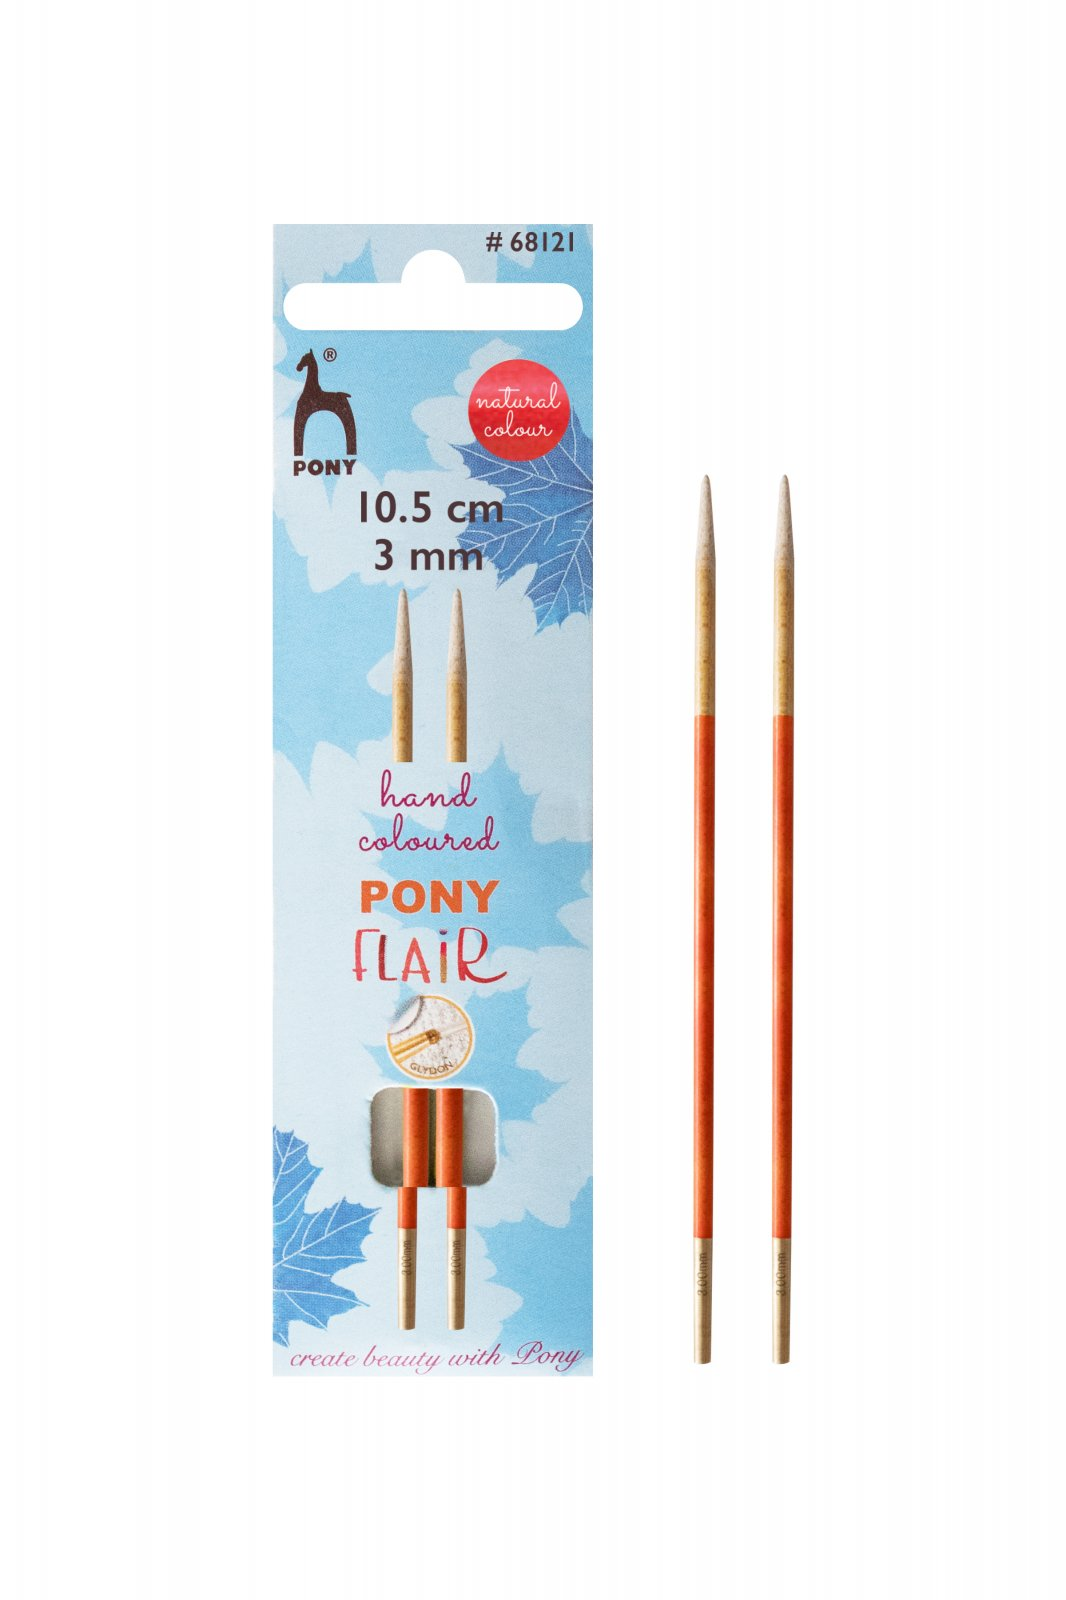 Pony Flair Interchangeable Needle Tips